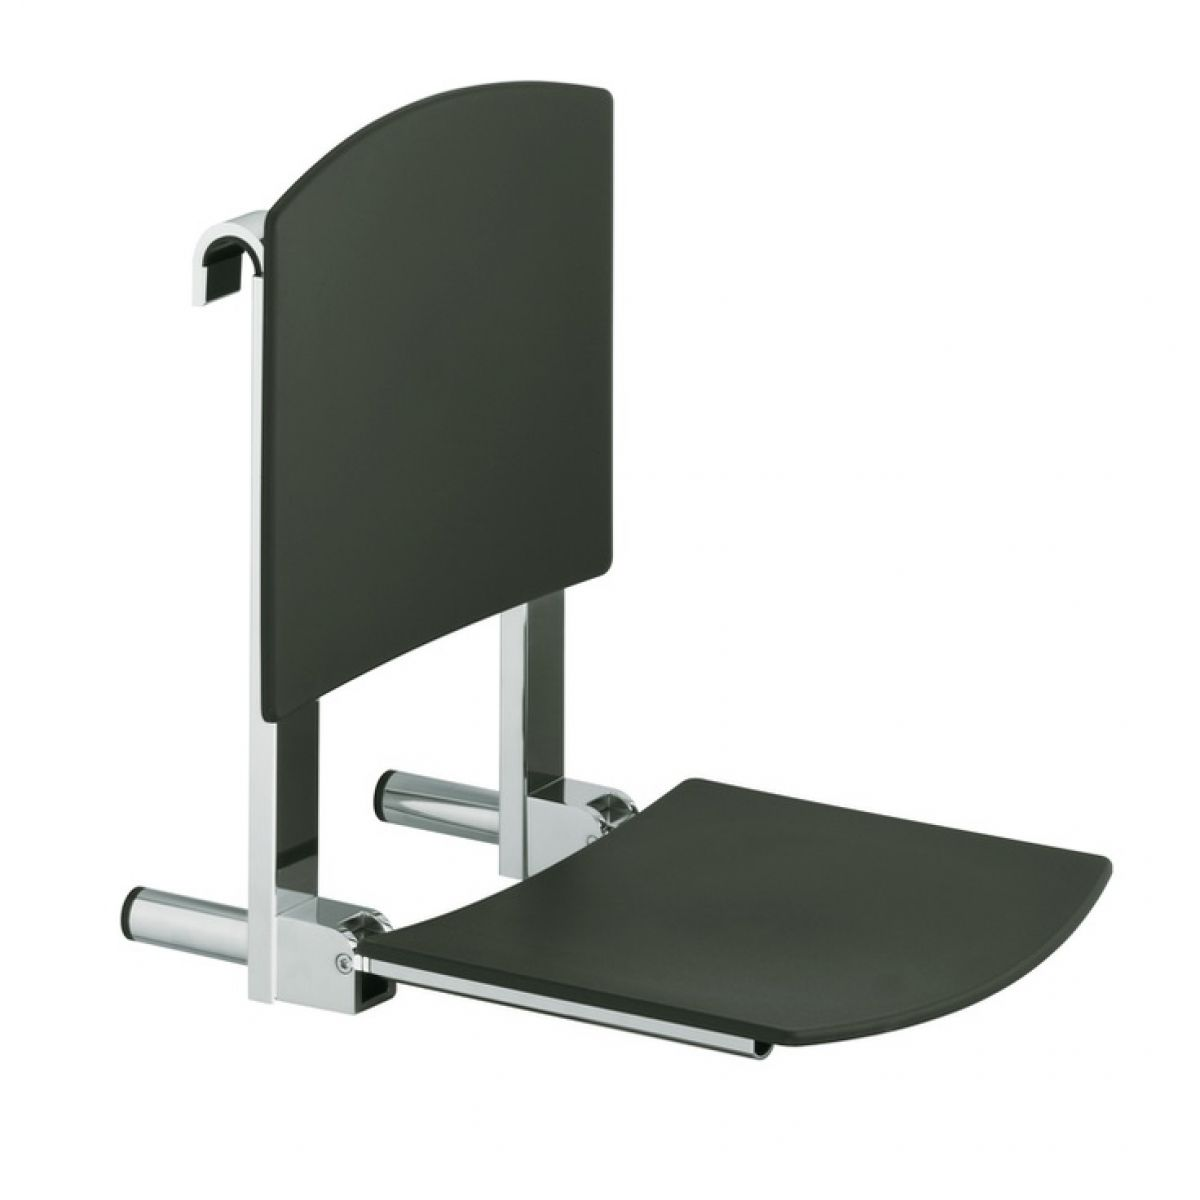 Keuco Plan Care Removeable Shower Seat - 34981010037